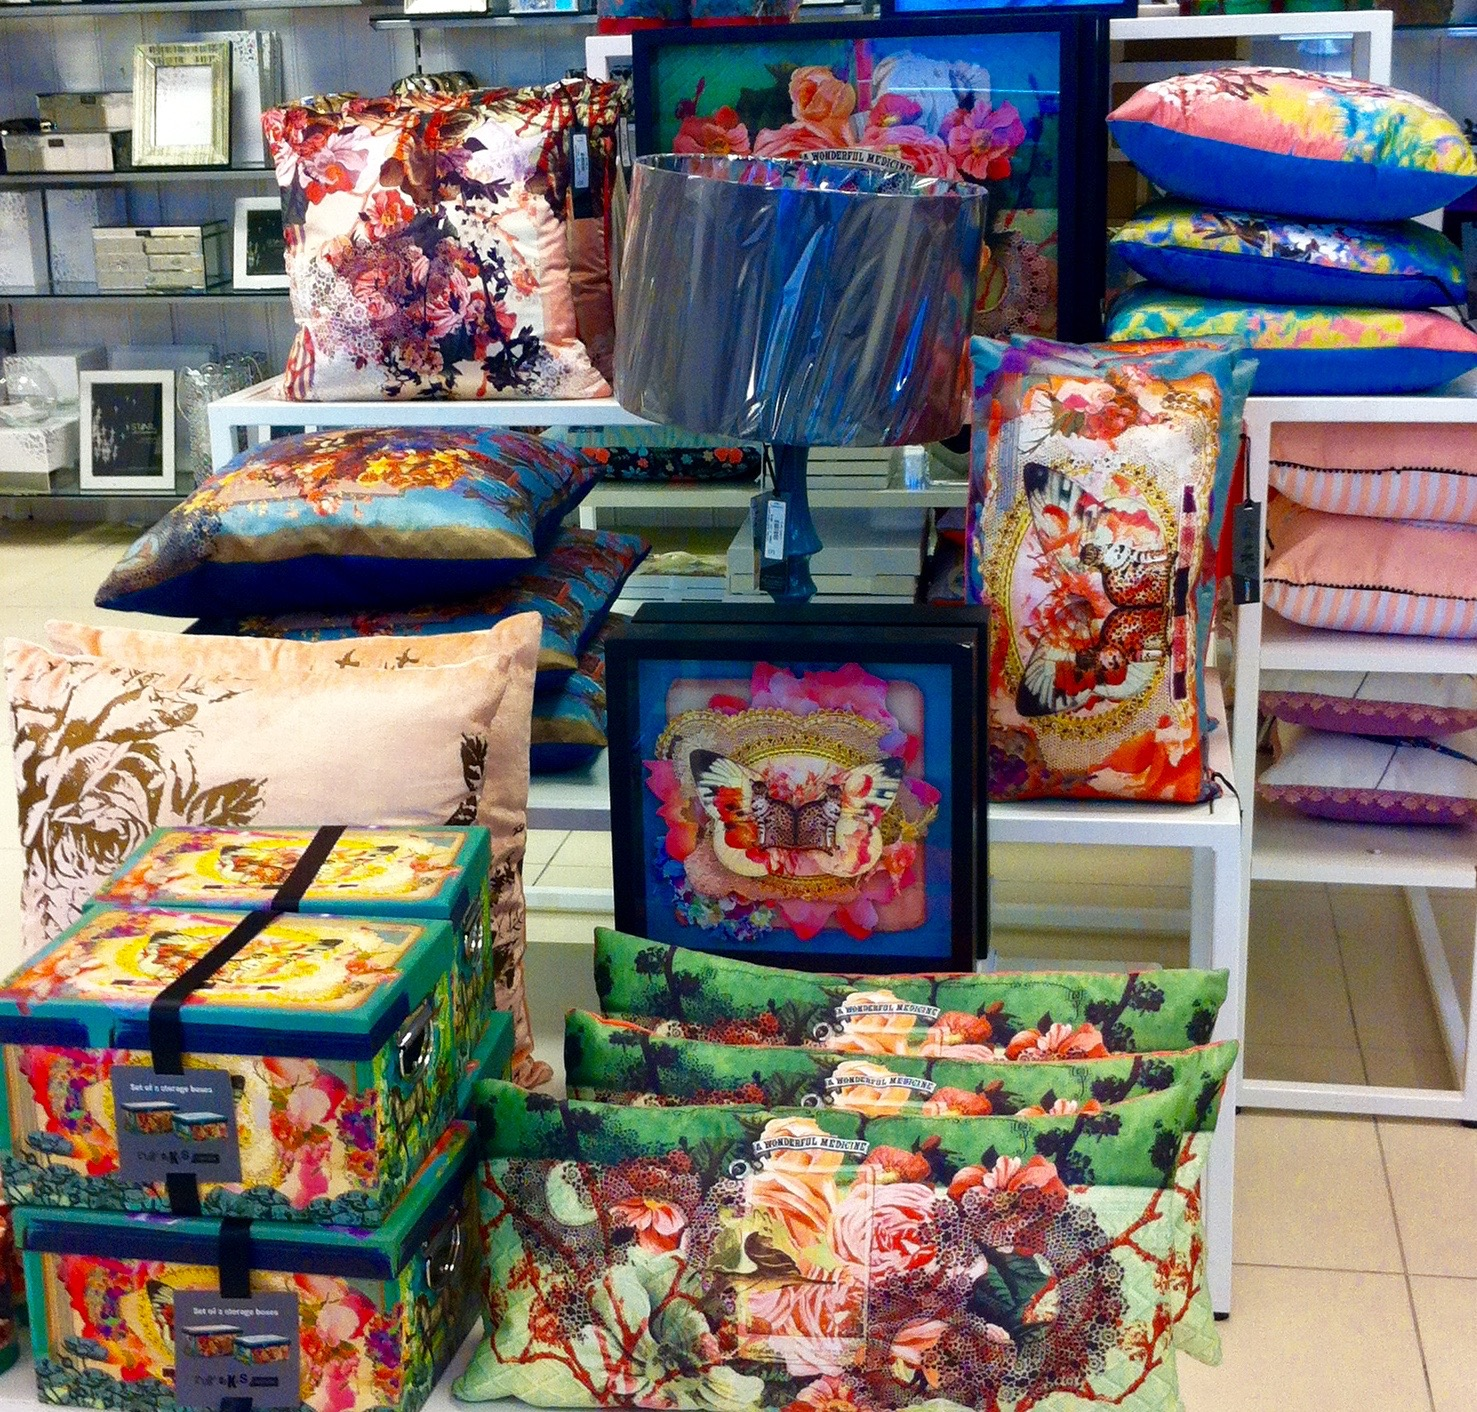 AND THERE'S FLORAL CUSHIONS TOO (DEBENHAMS)